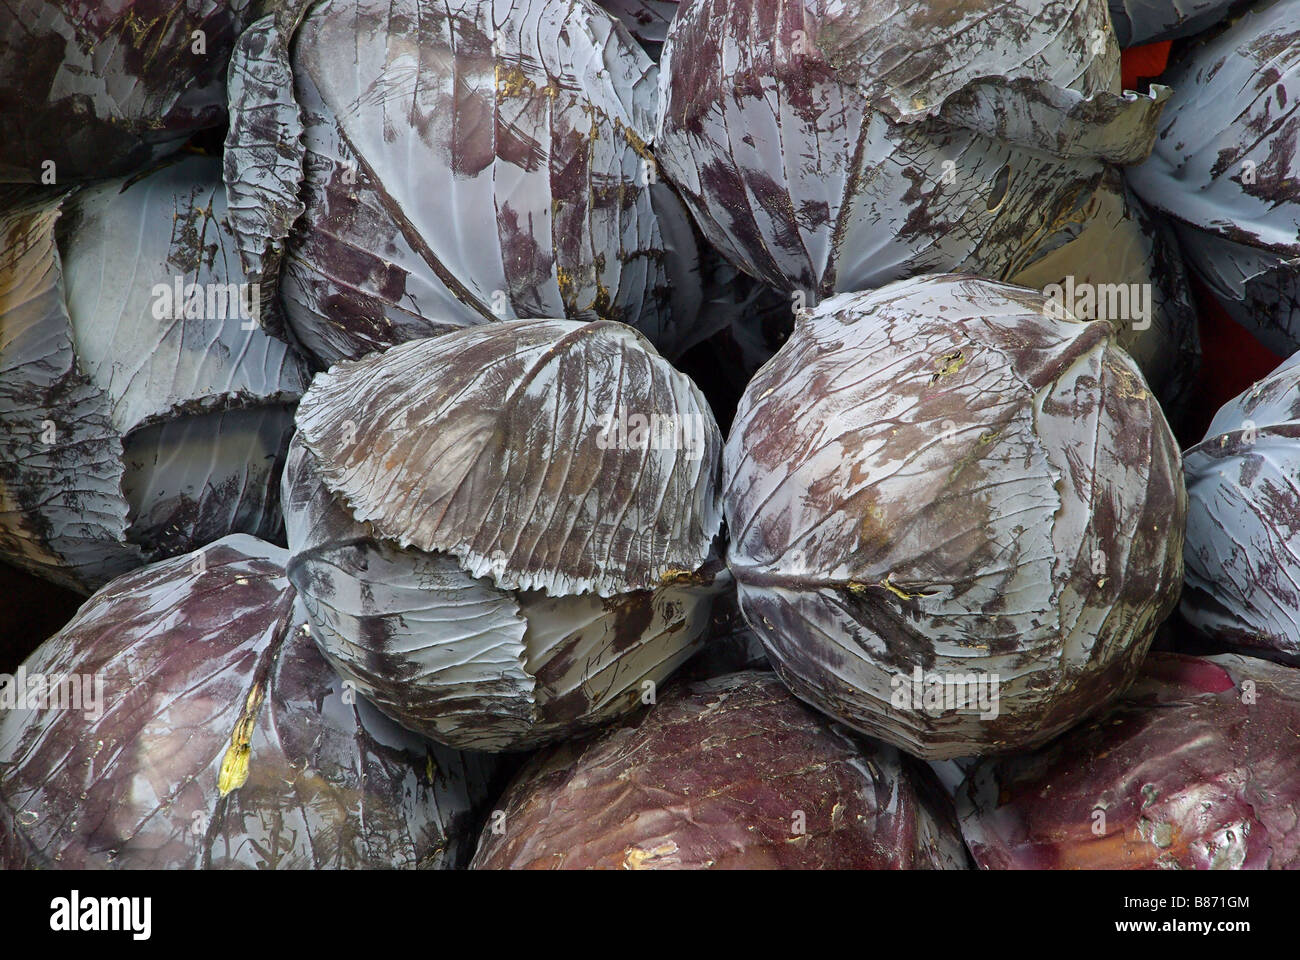 Rotkohl red cabbage 01 - Stock Image